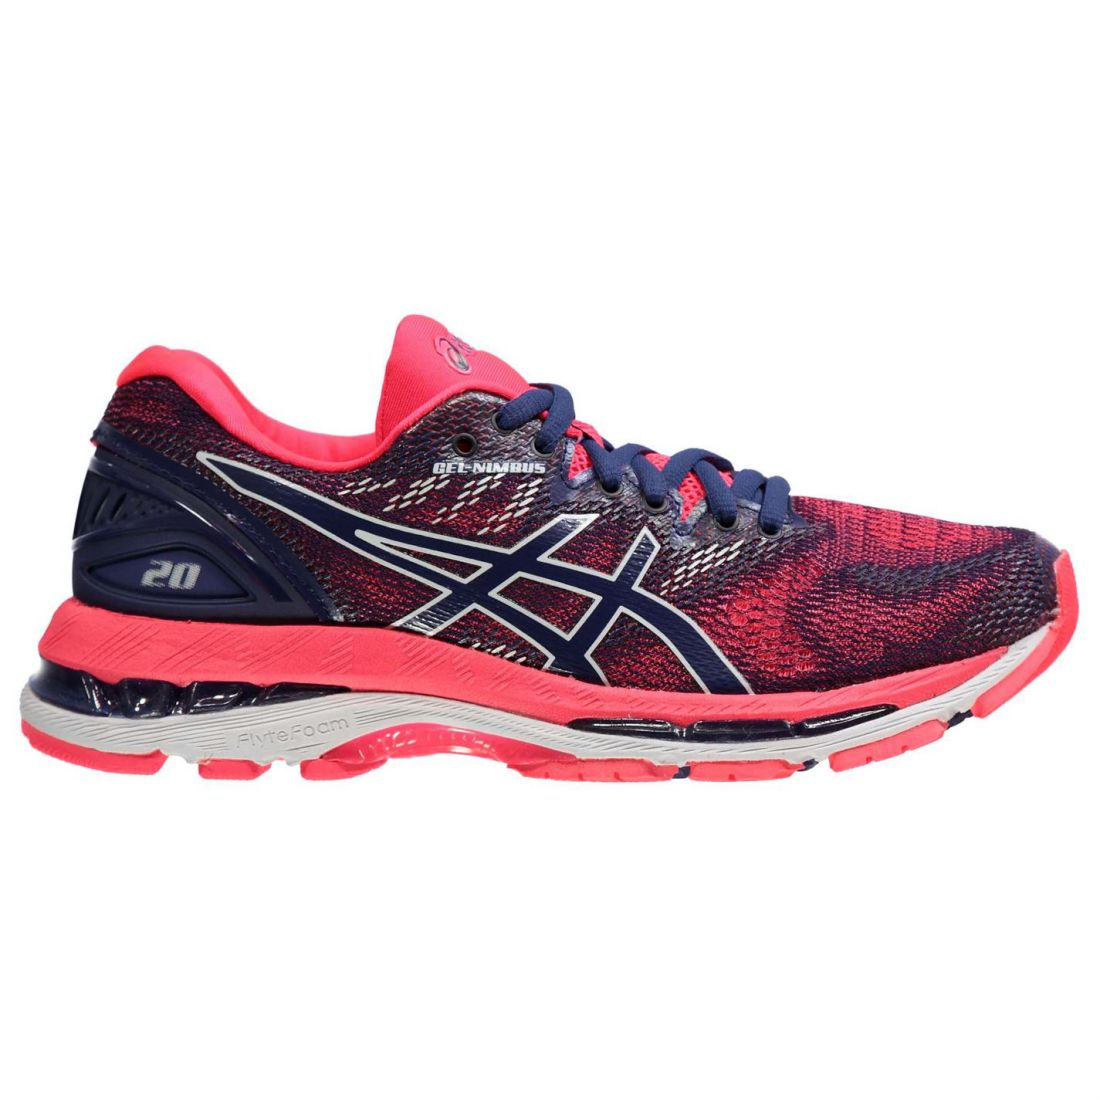 bfc35e824 Asics Womens Gel Nimbus 20 Running Shoes Road Lightweight Ortholite ...